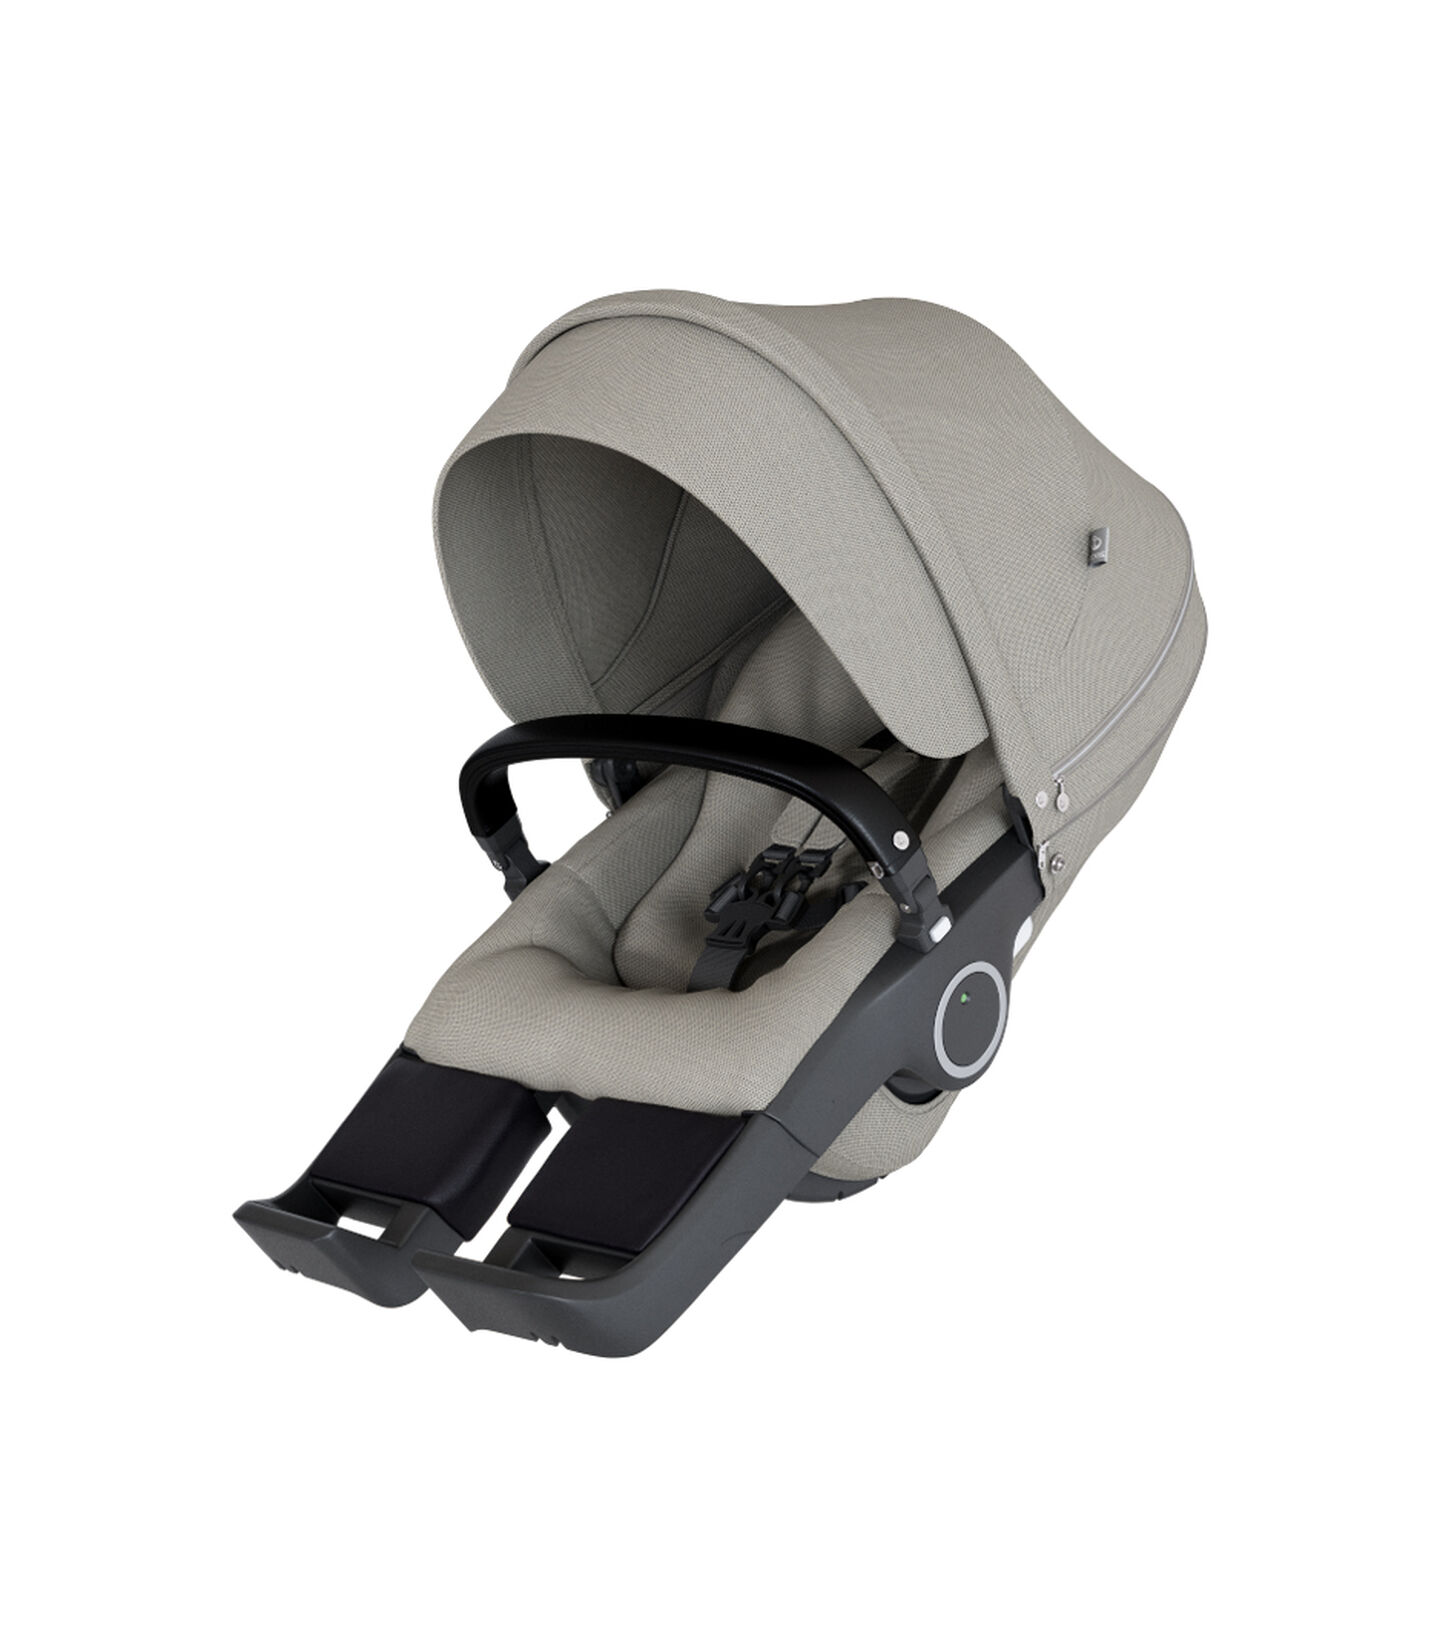 Stokke® Stroller Seat Complete Brushed Grey, Brushed Grey, mainview view 2